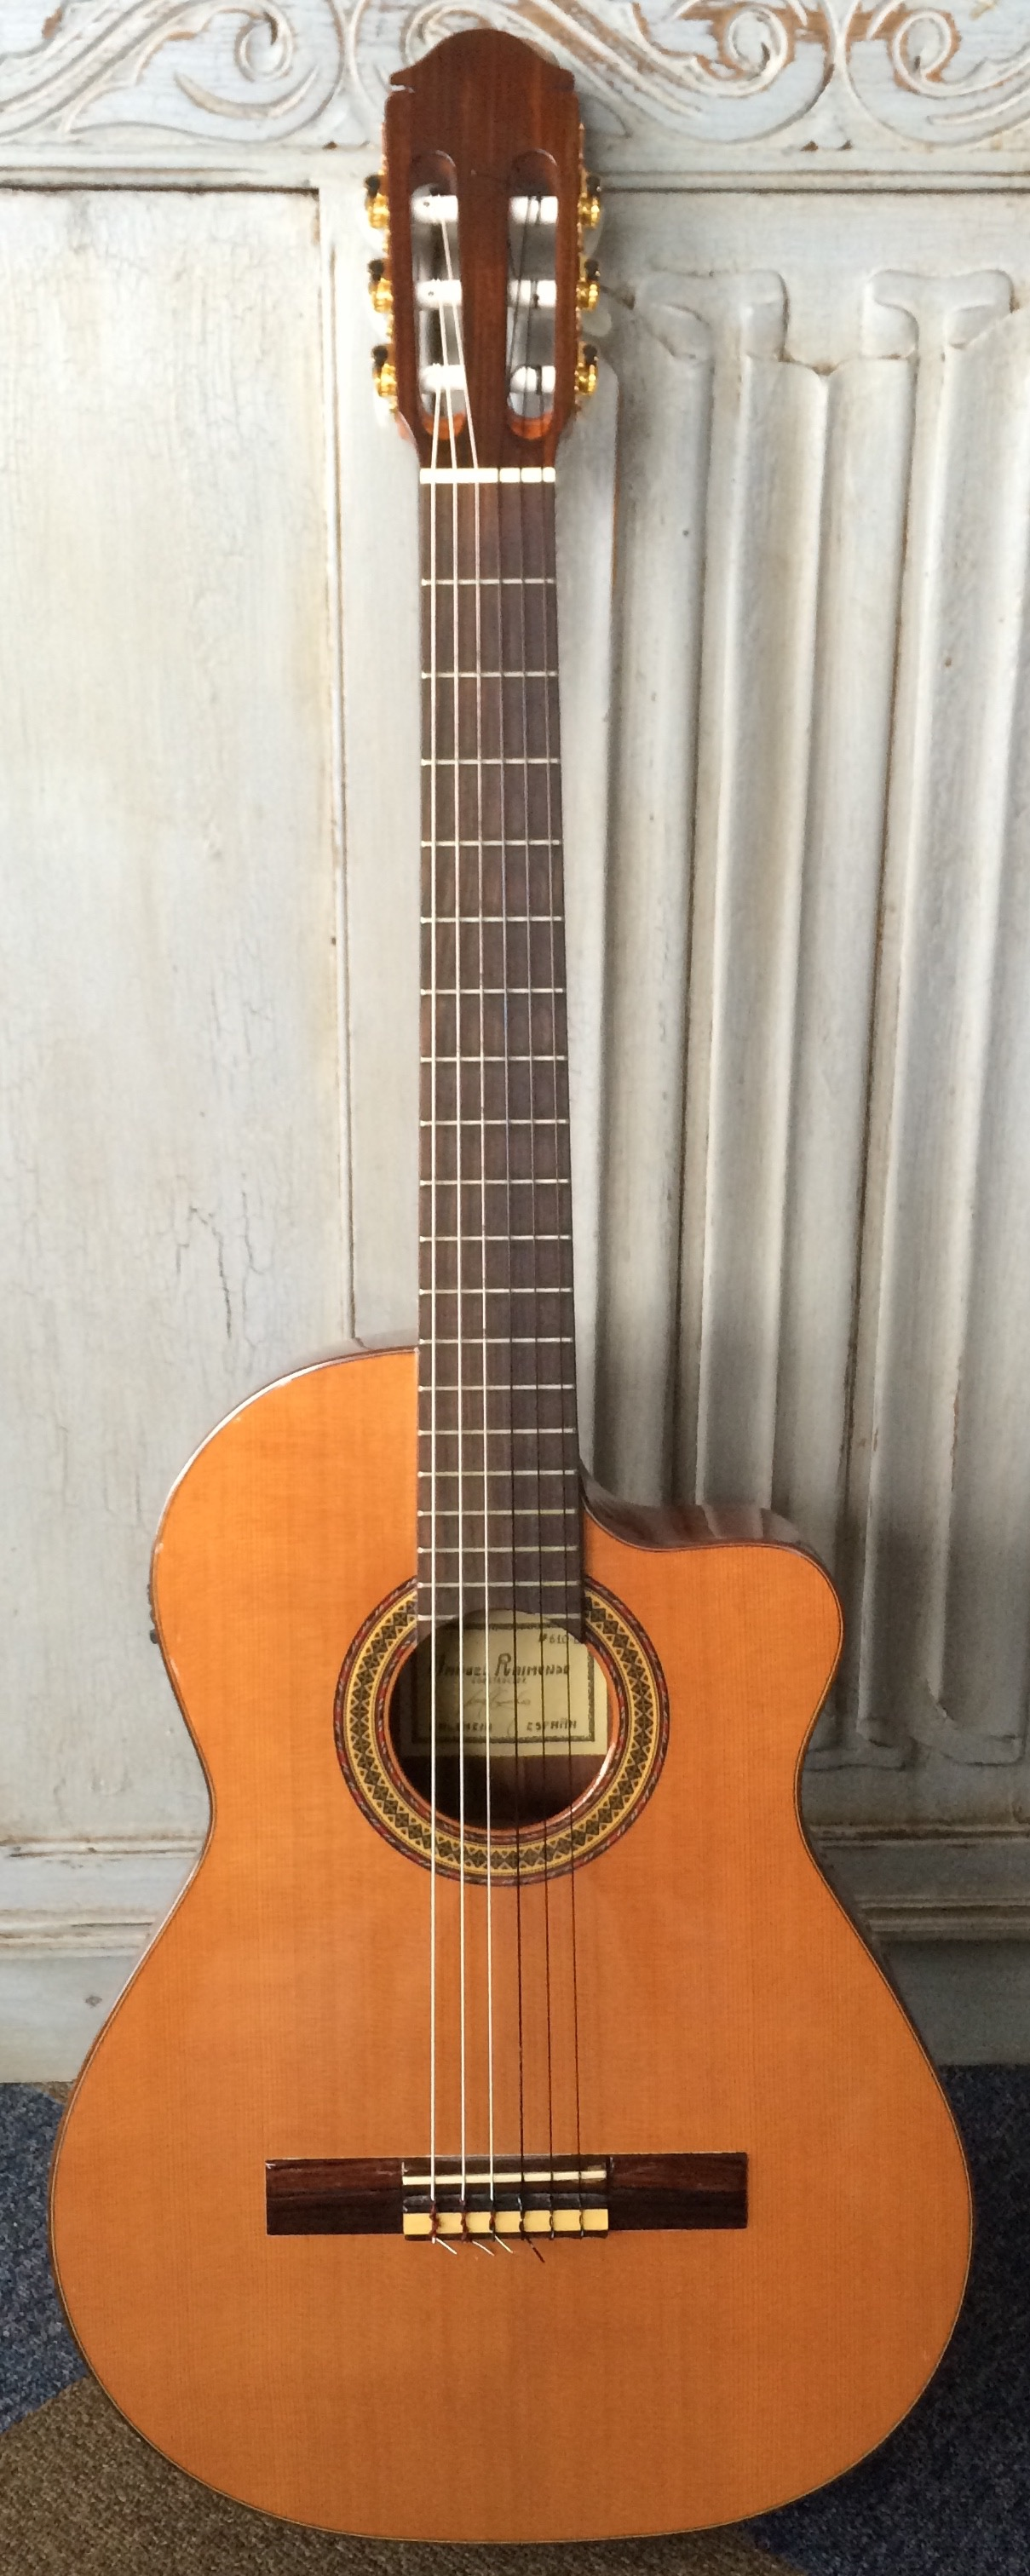 RAIMUNDO 610e - Nick recorded 'White Wedding Blue' with his flamenco Raimundo 610e. This is a hand made Spanish electro cutaway with cedar neck, ebony fingerboard, mahogany back and sides and spruce top.